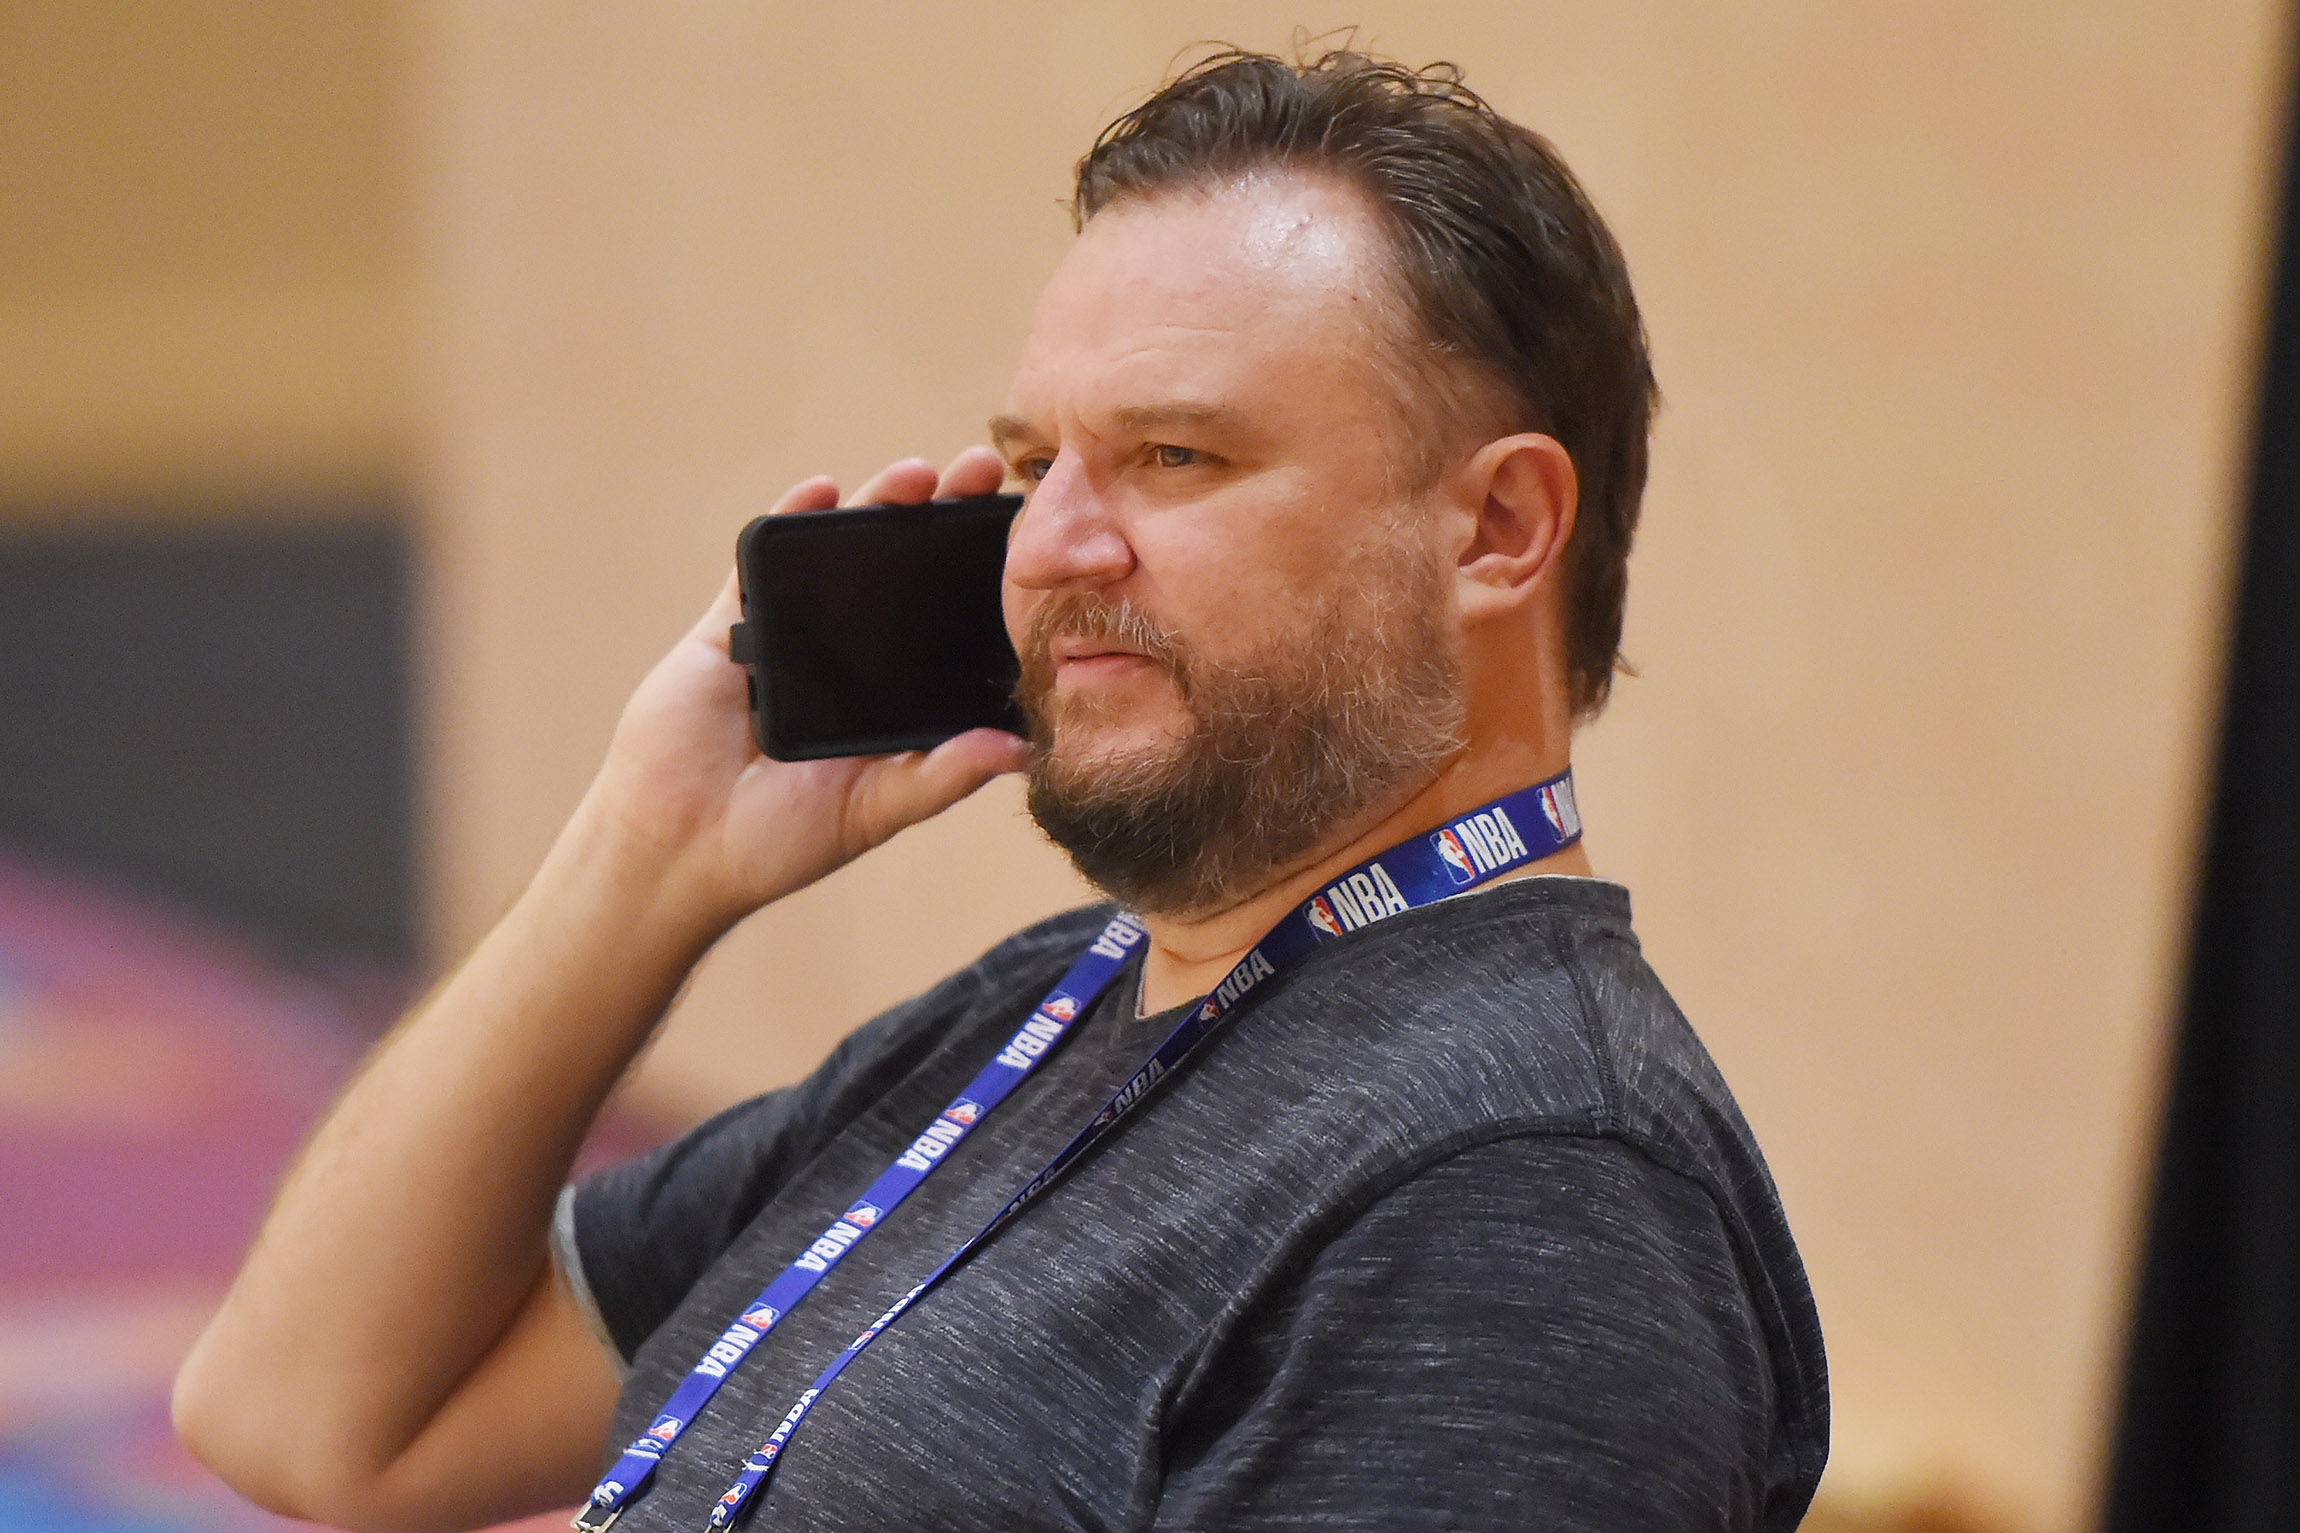 Houston Rockets GM Daryl Morey, who sparked controversy between the NBA and China, to step down